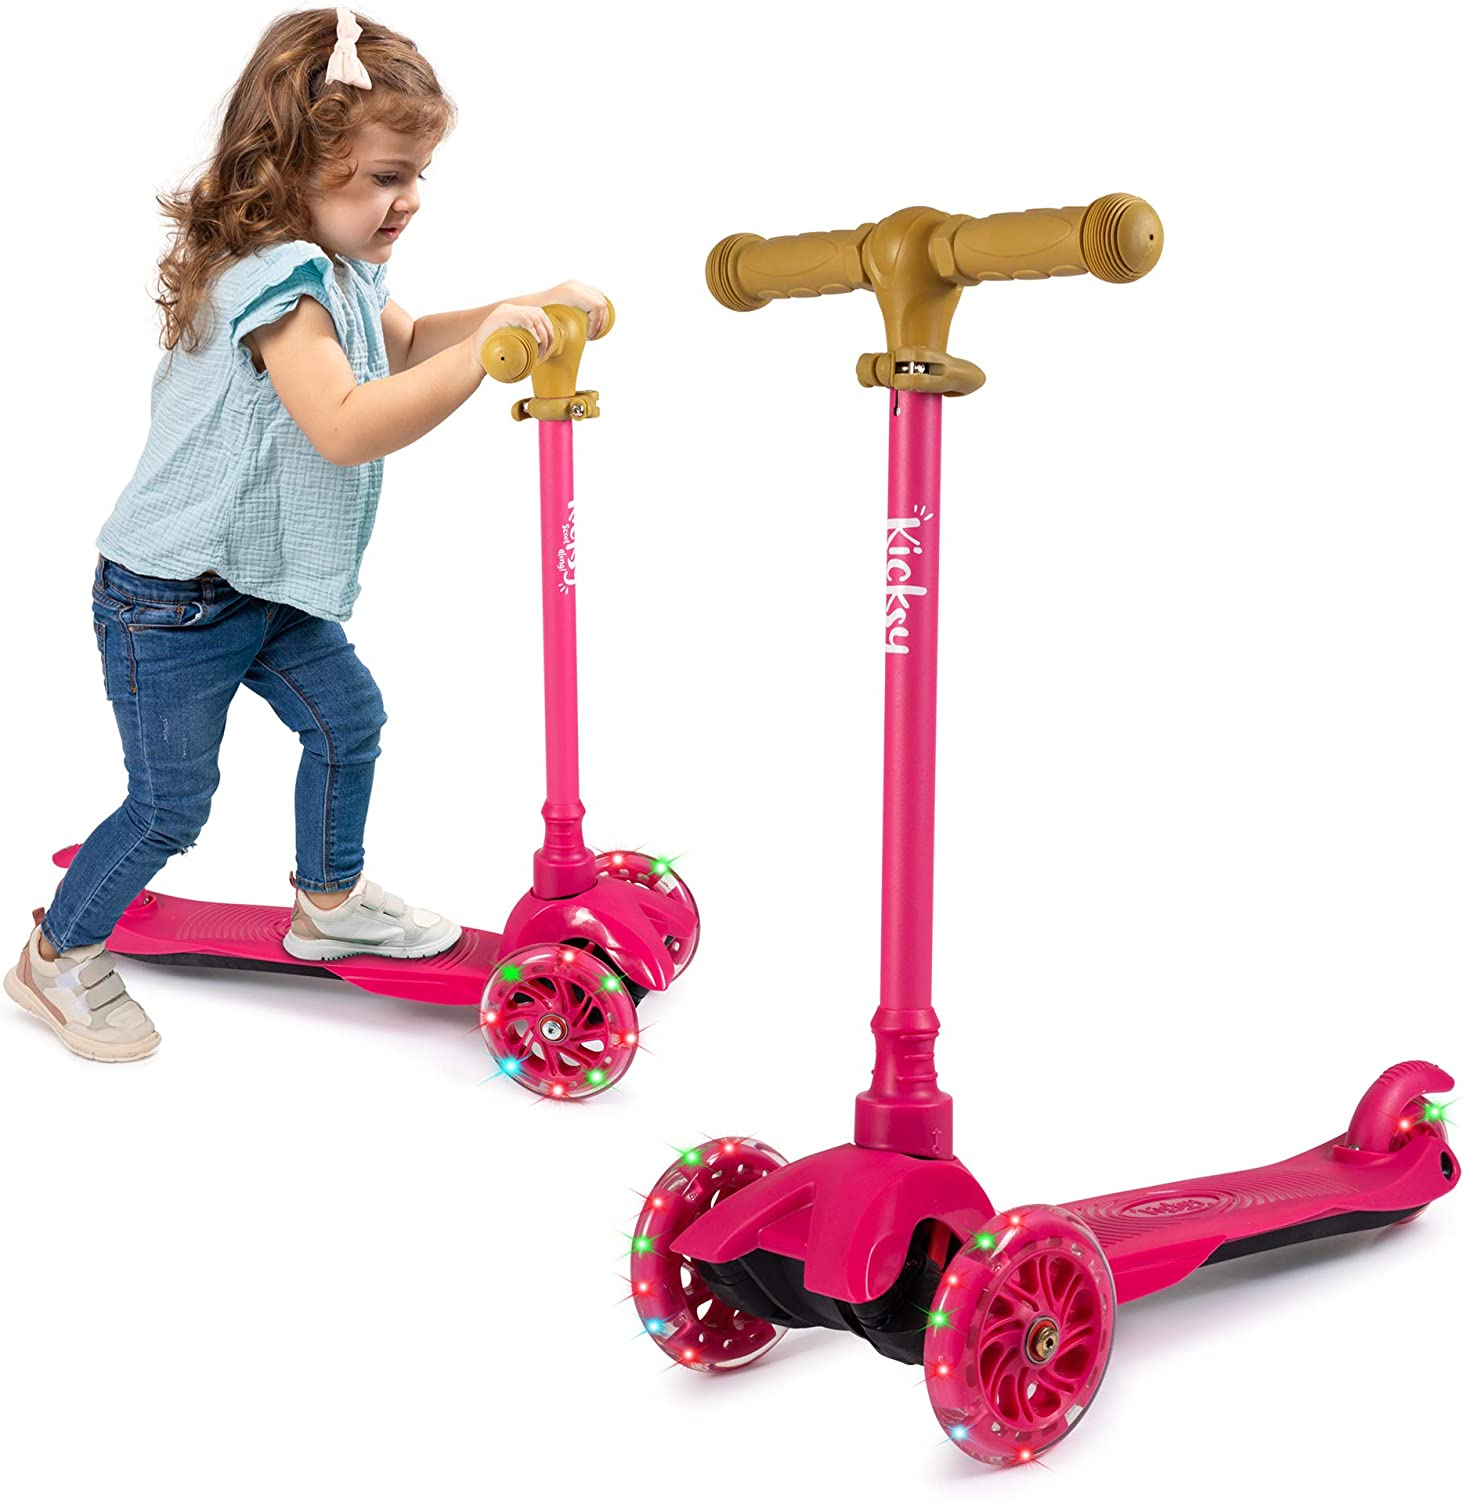 Three Heights /& Light Up Wheels KicksyWheels Scooters for Kids Toddlers and Kids Toys for 1 Year Old and Up 3 Wheel Toddler Scooter for Boys /& Girls